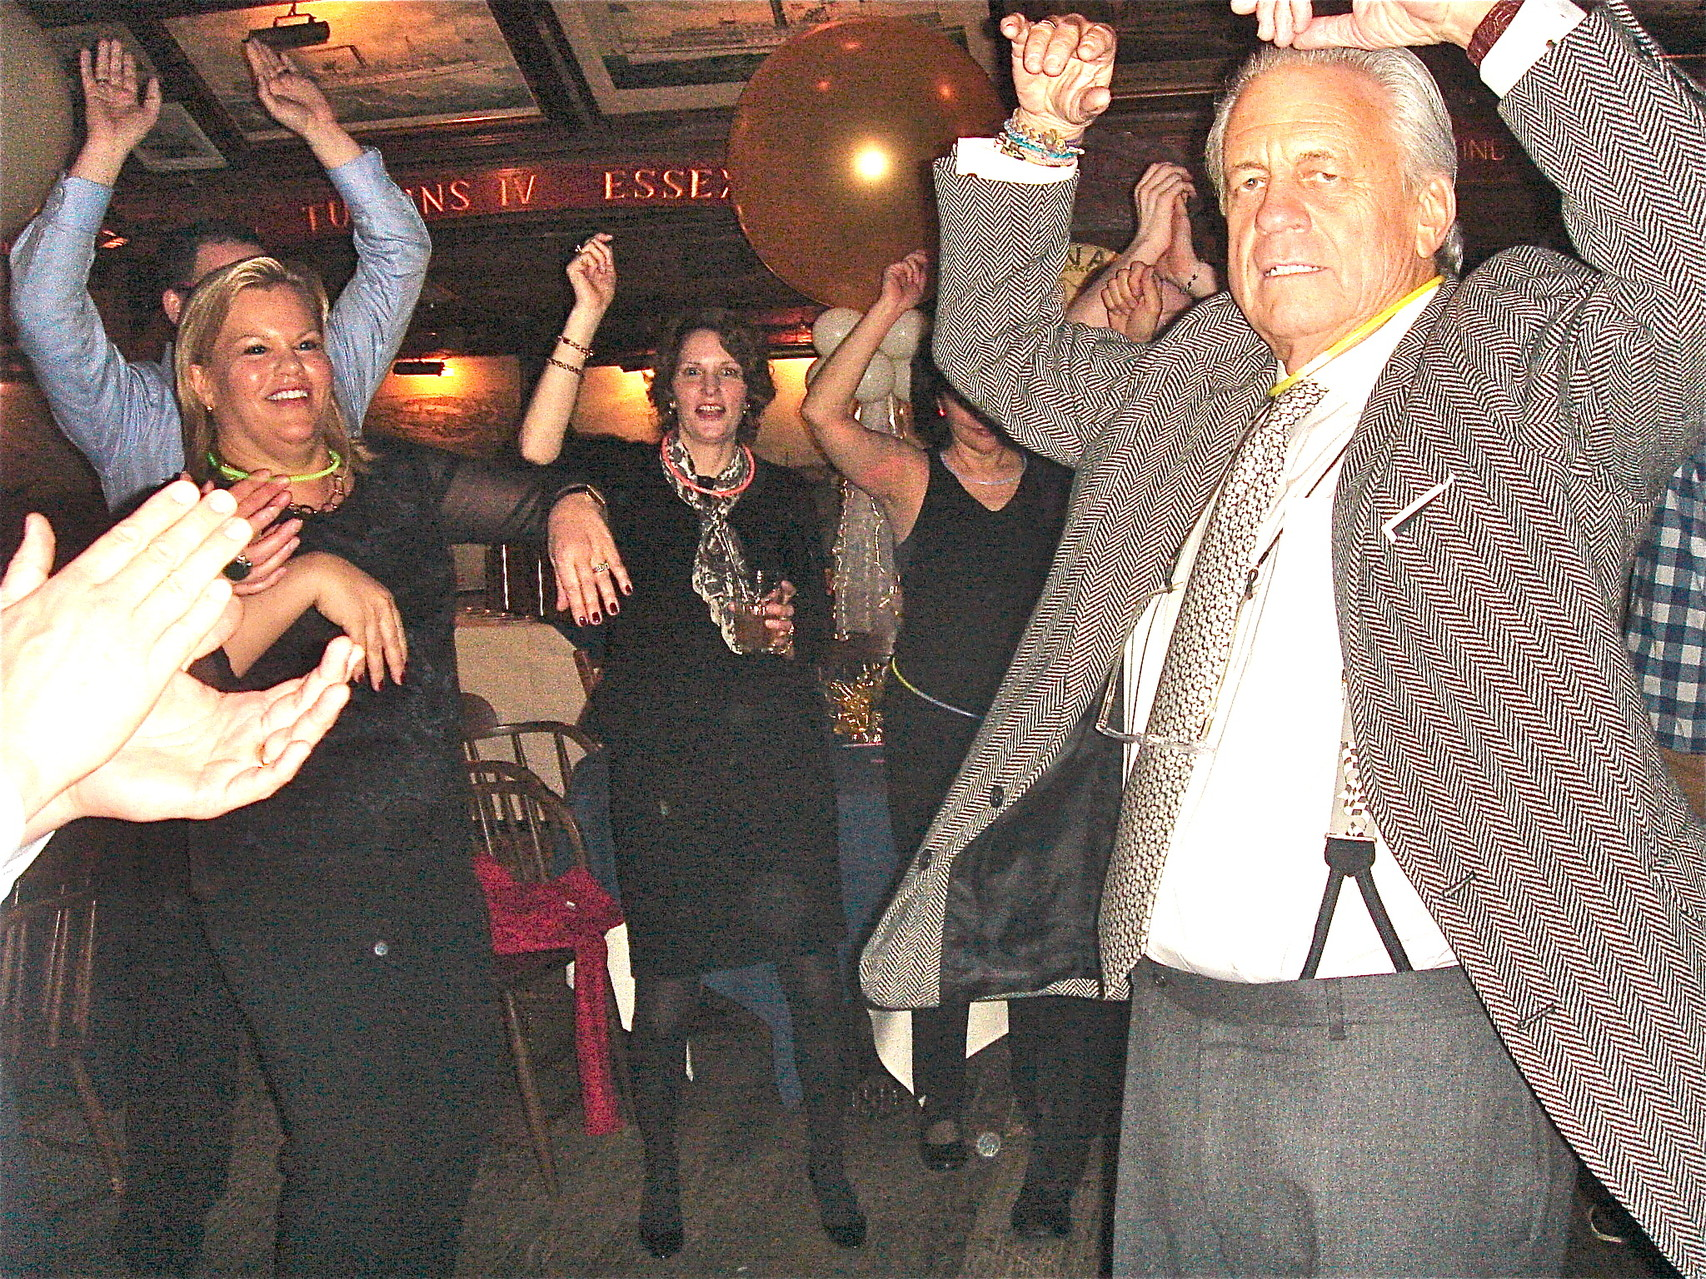 Celeste and Stuart show get down on the dance floor; Lisa Kagel in middle in back.